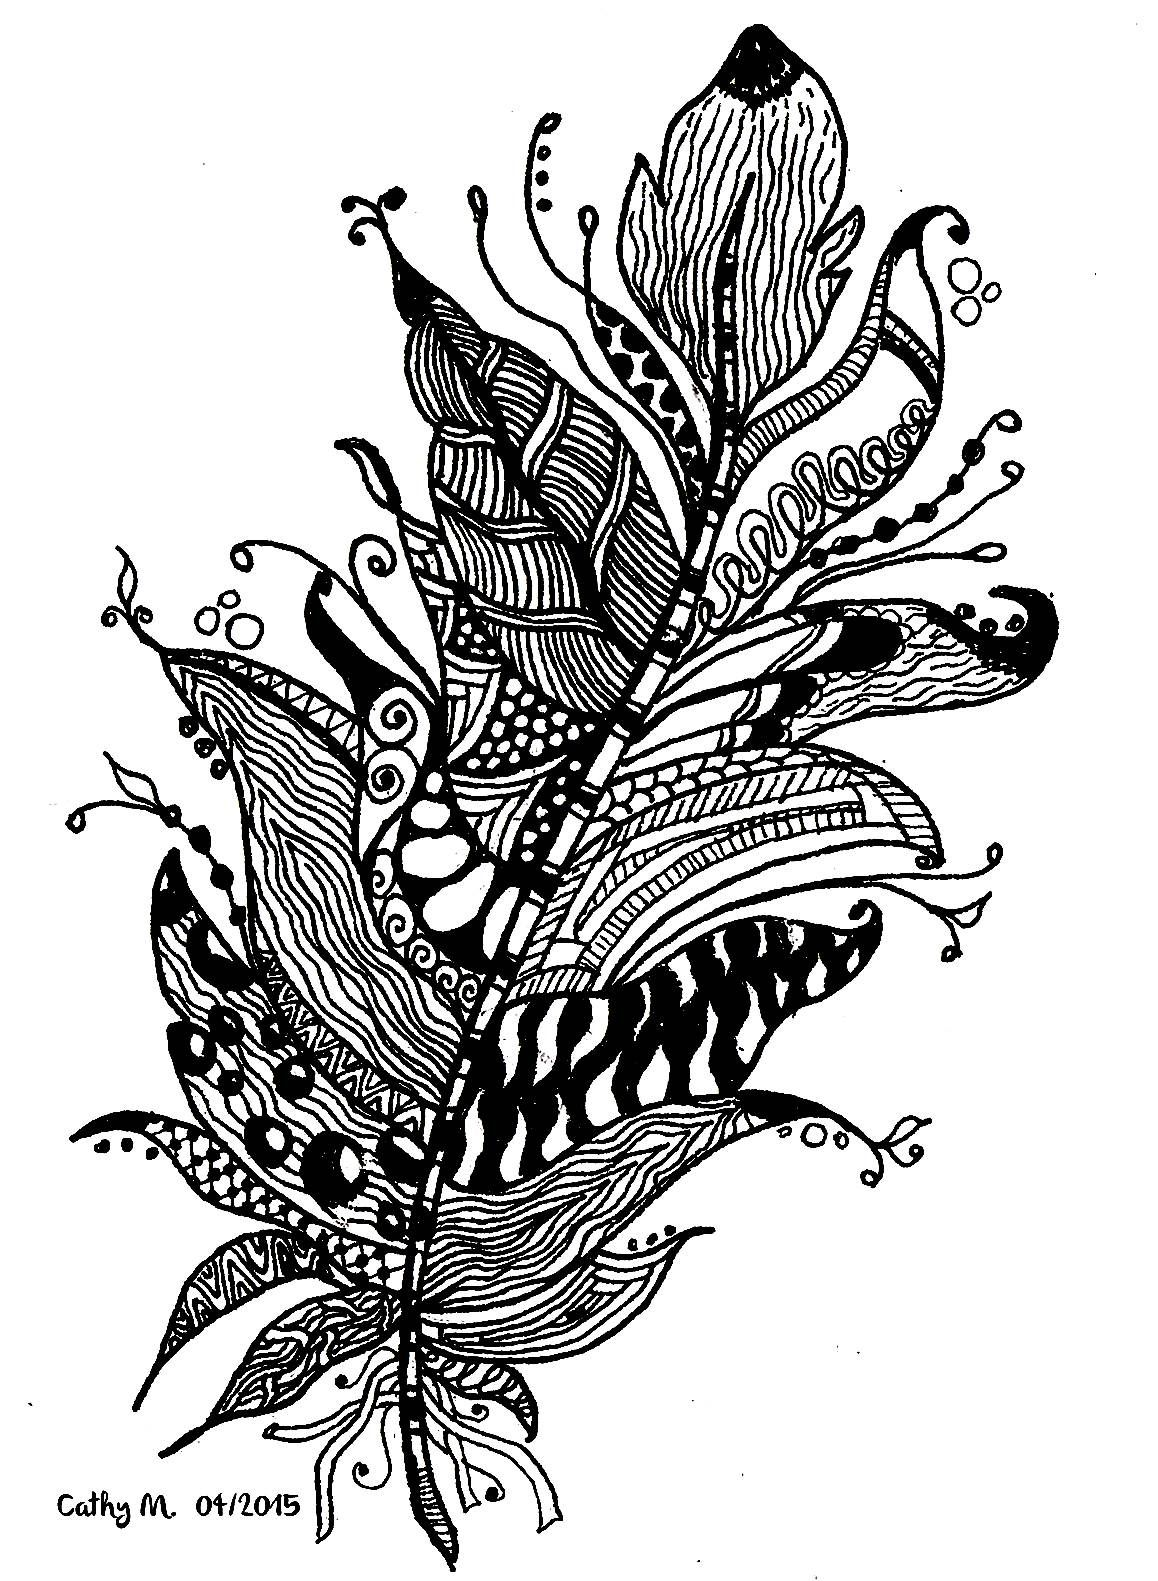 Free coloring pages of peacock feathers coloring everyday printable - Free Coloring Page Coloring Zentangle By Cathym 11 Fancy Feather